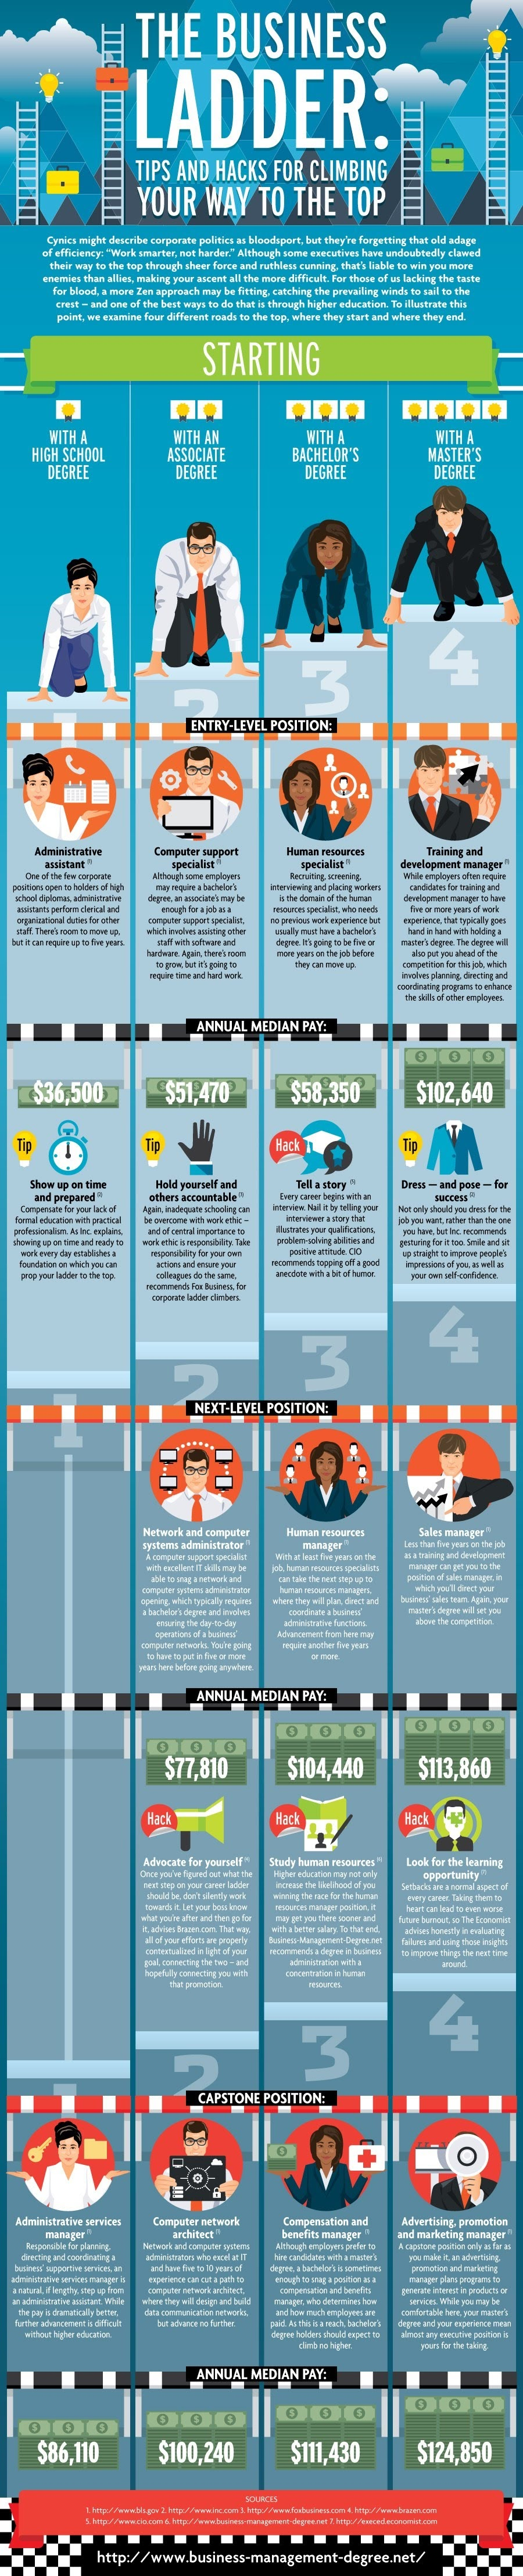 Hacks For Climbing Your Way Up The Business Ladder #Infographic